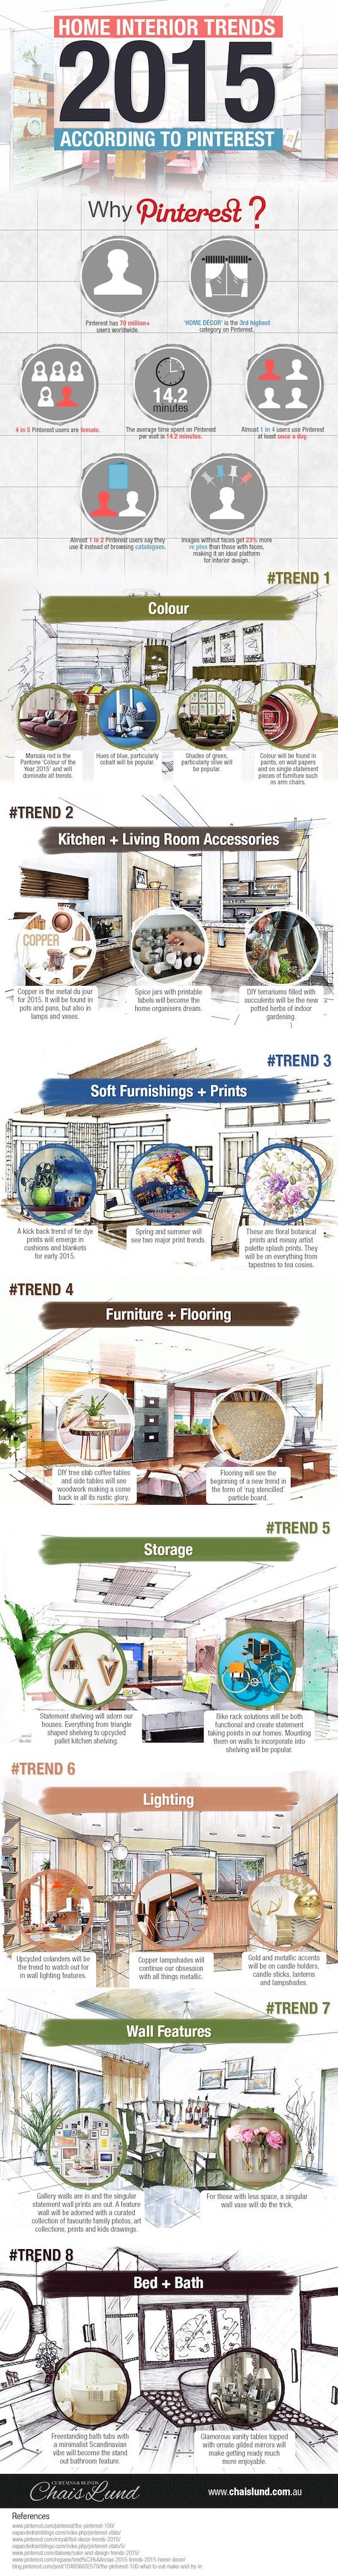 INFOGRAPHIC The Top 8 Home Interior Trends Of 2015 According To Pinterest